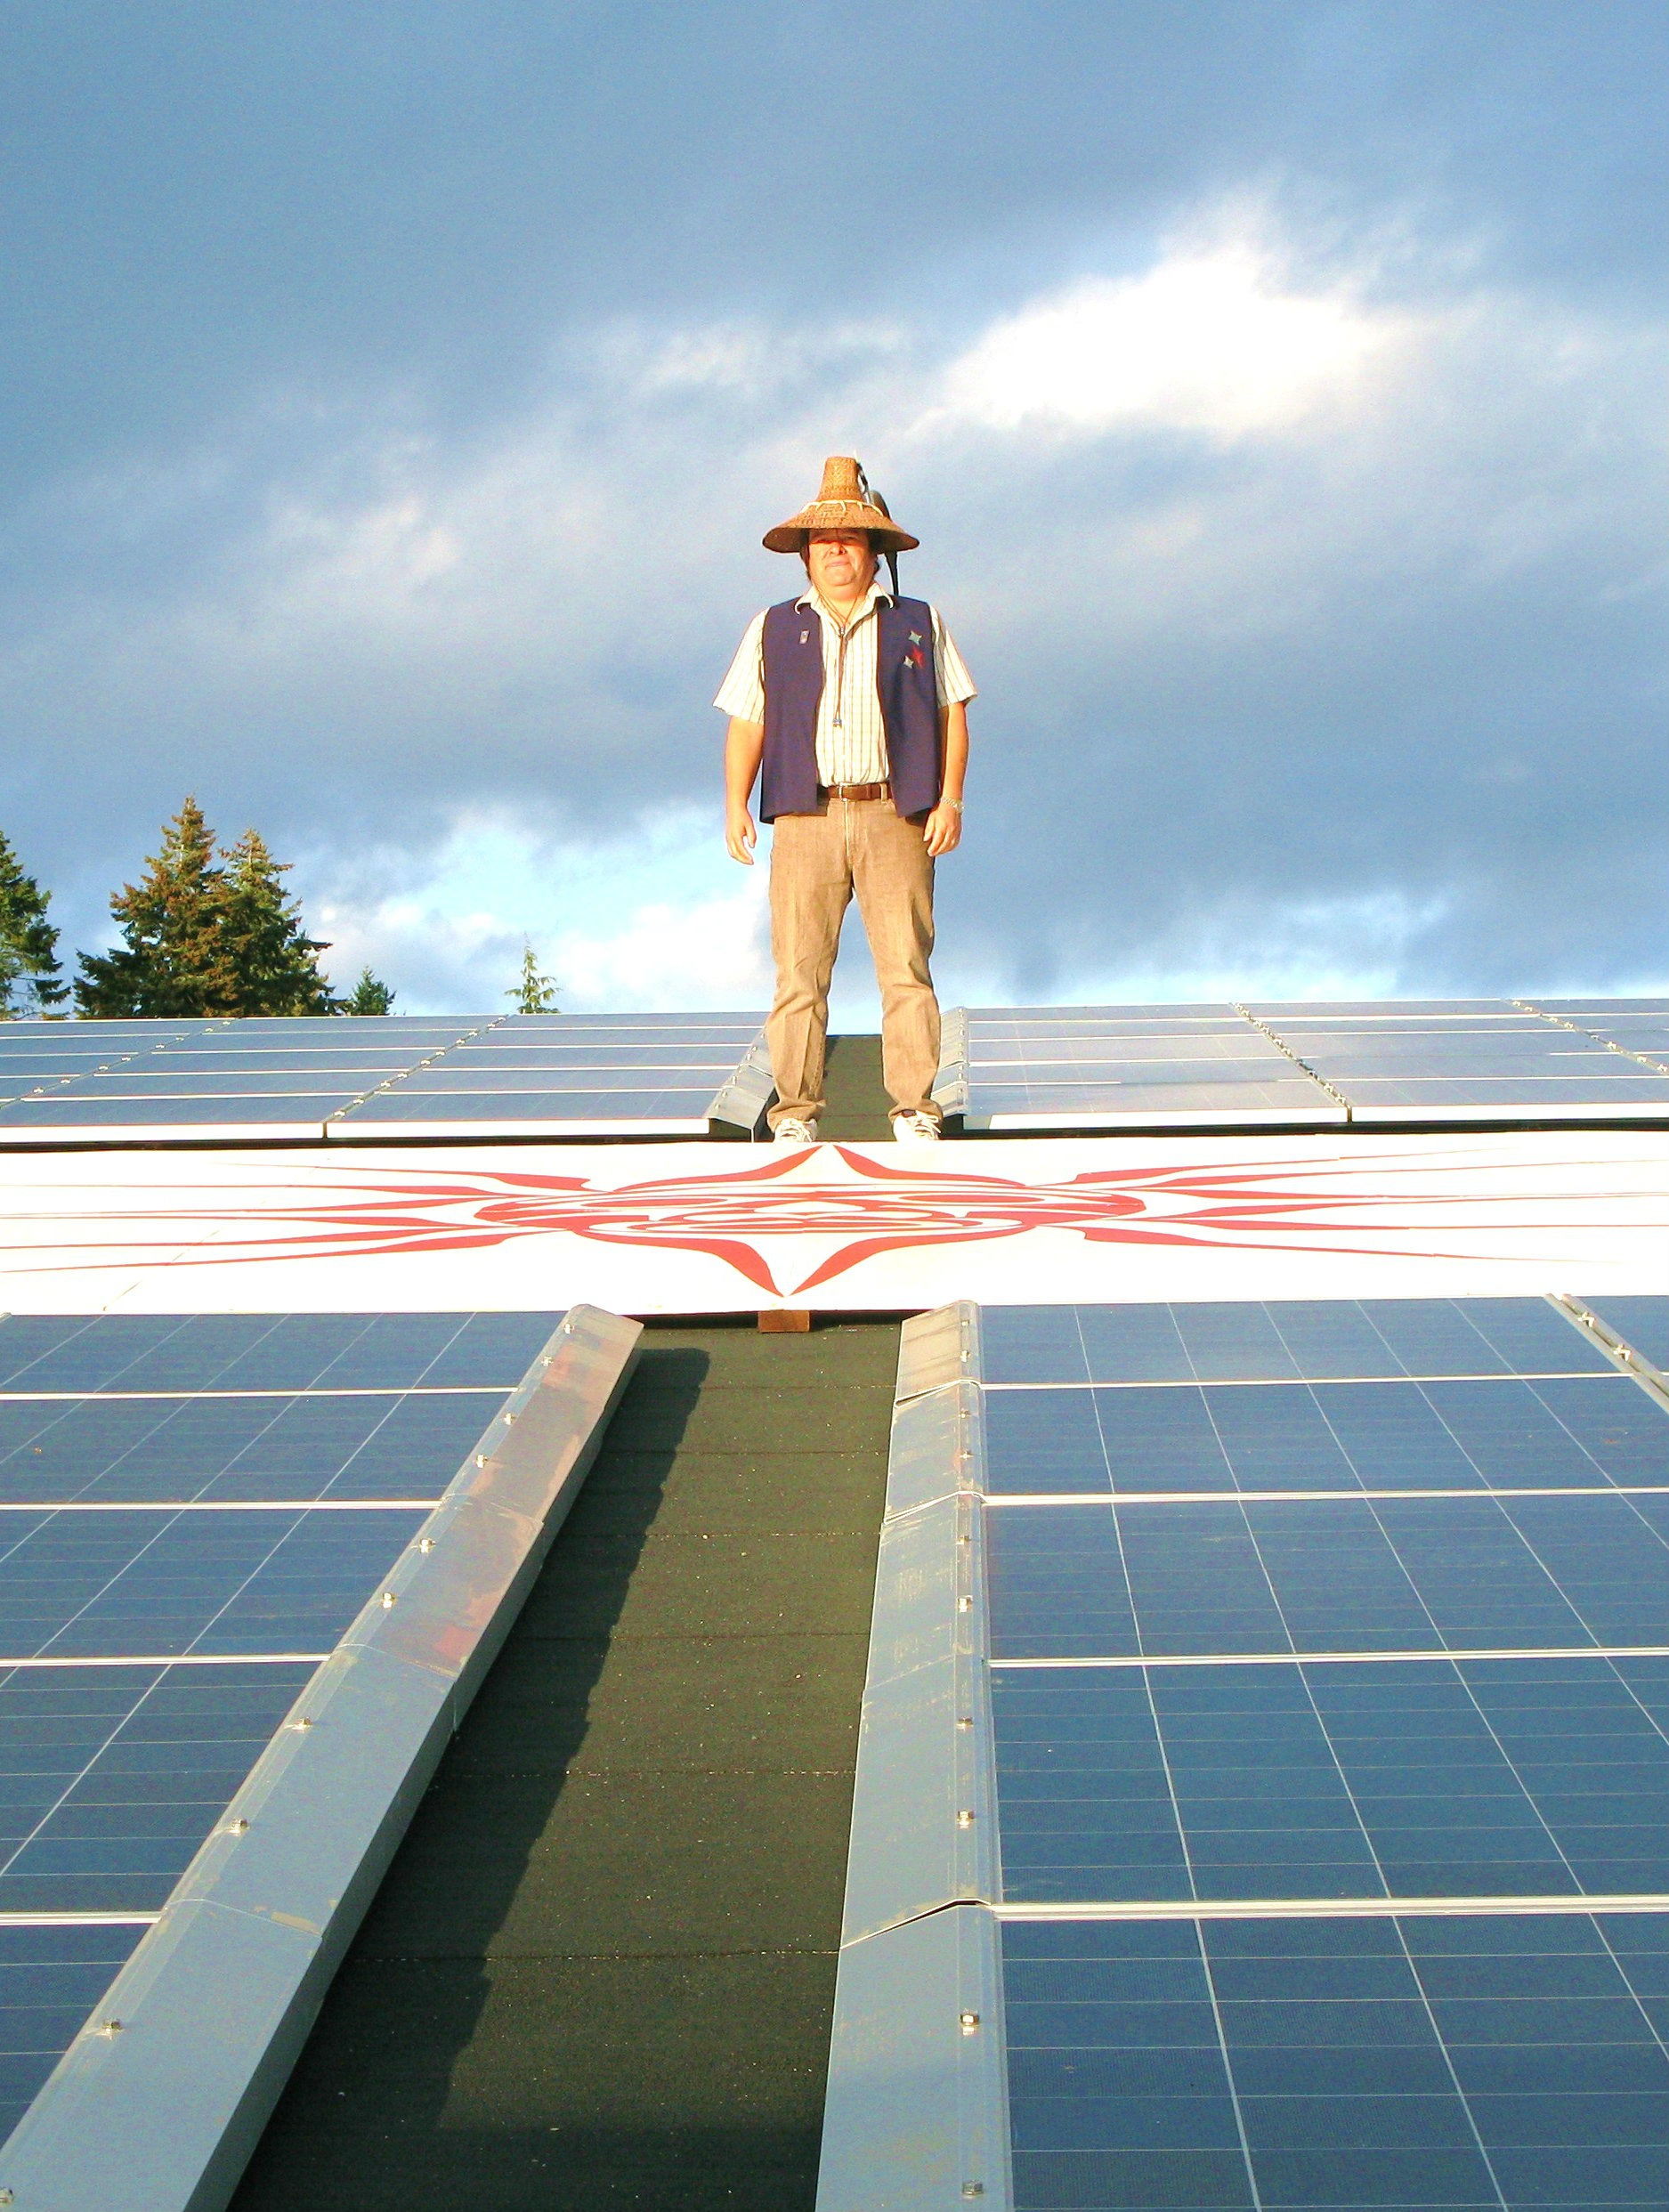 Chief Gordon Planes of T'Souke First Nation in B.C. stands proud amongst the solar PV array his community installed.